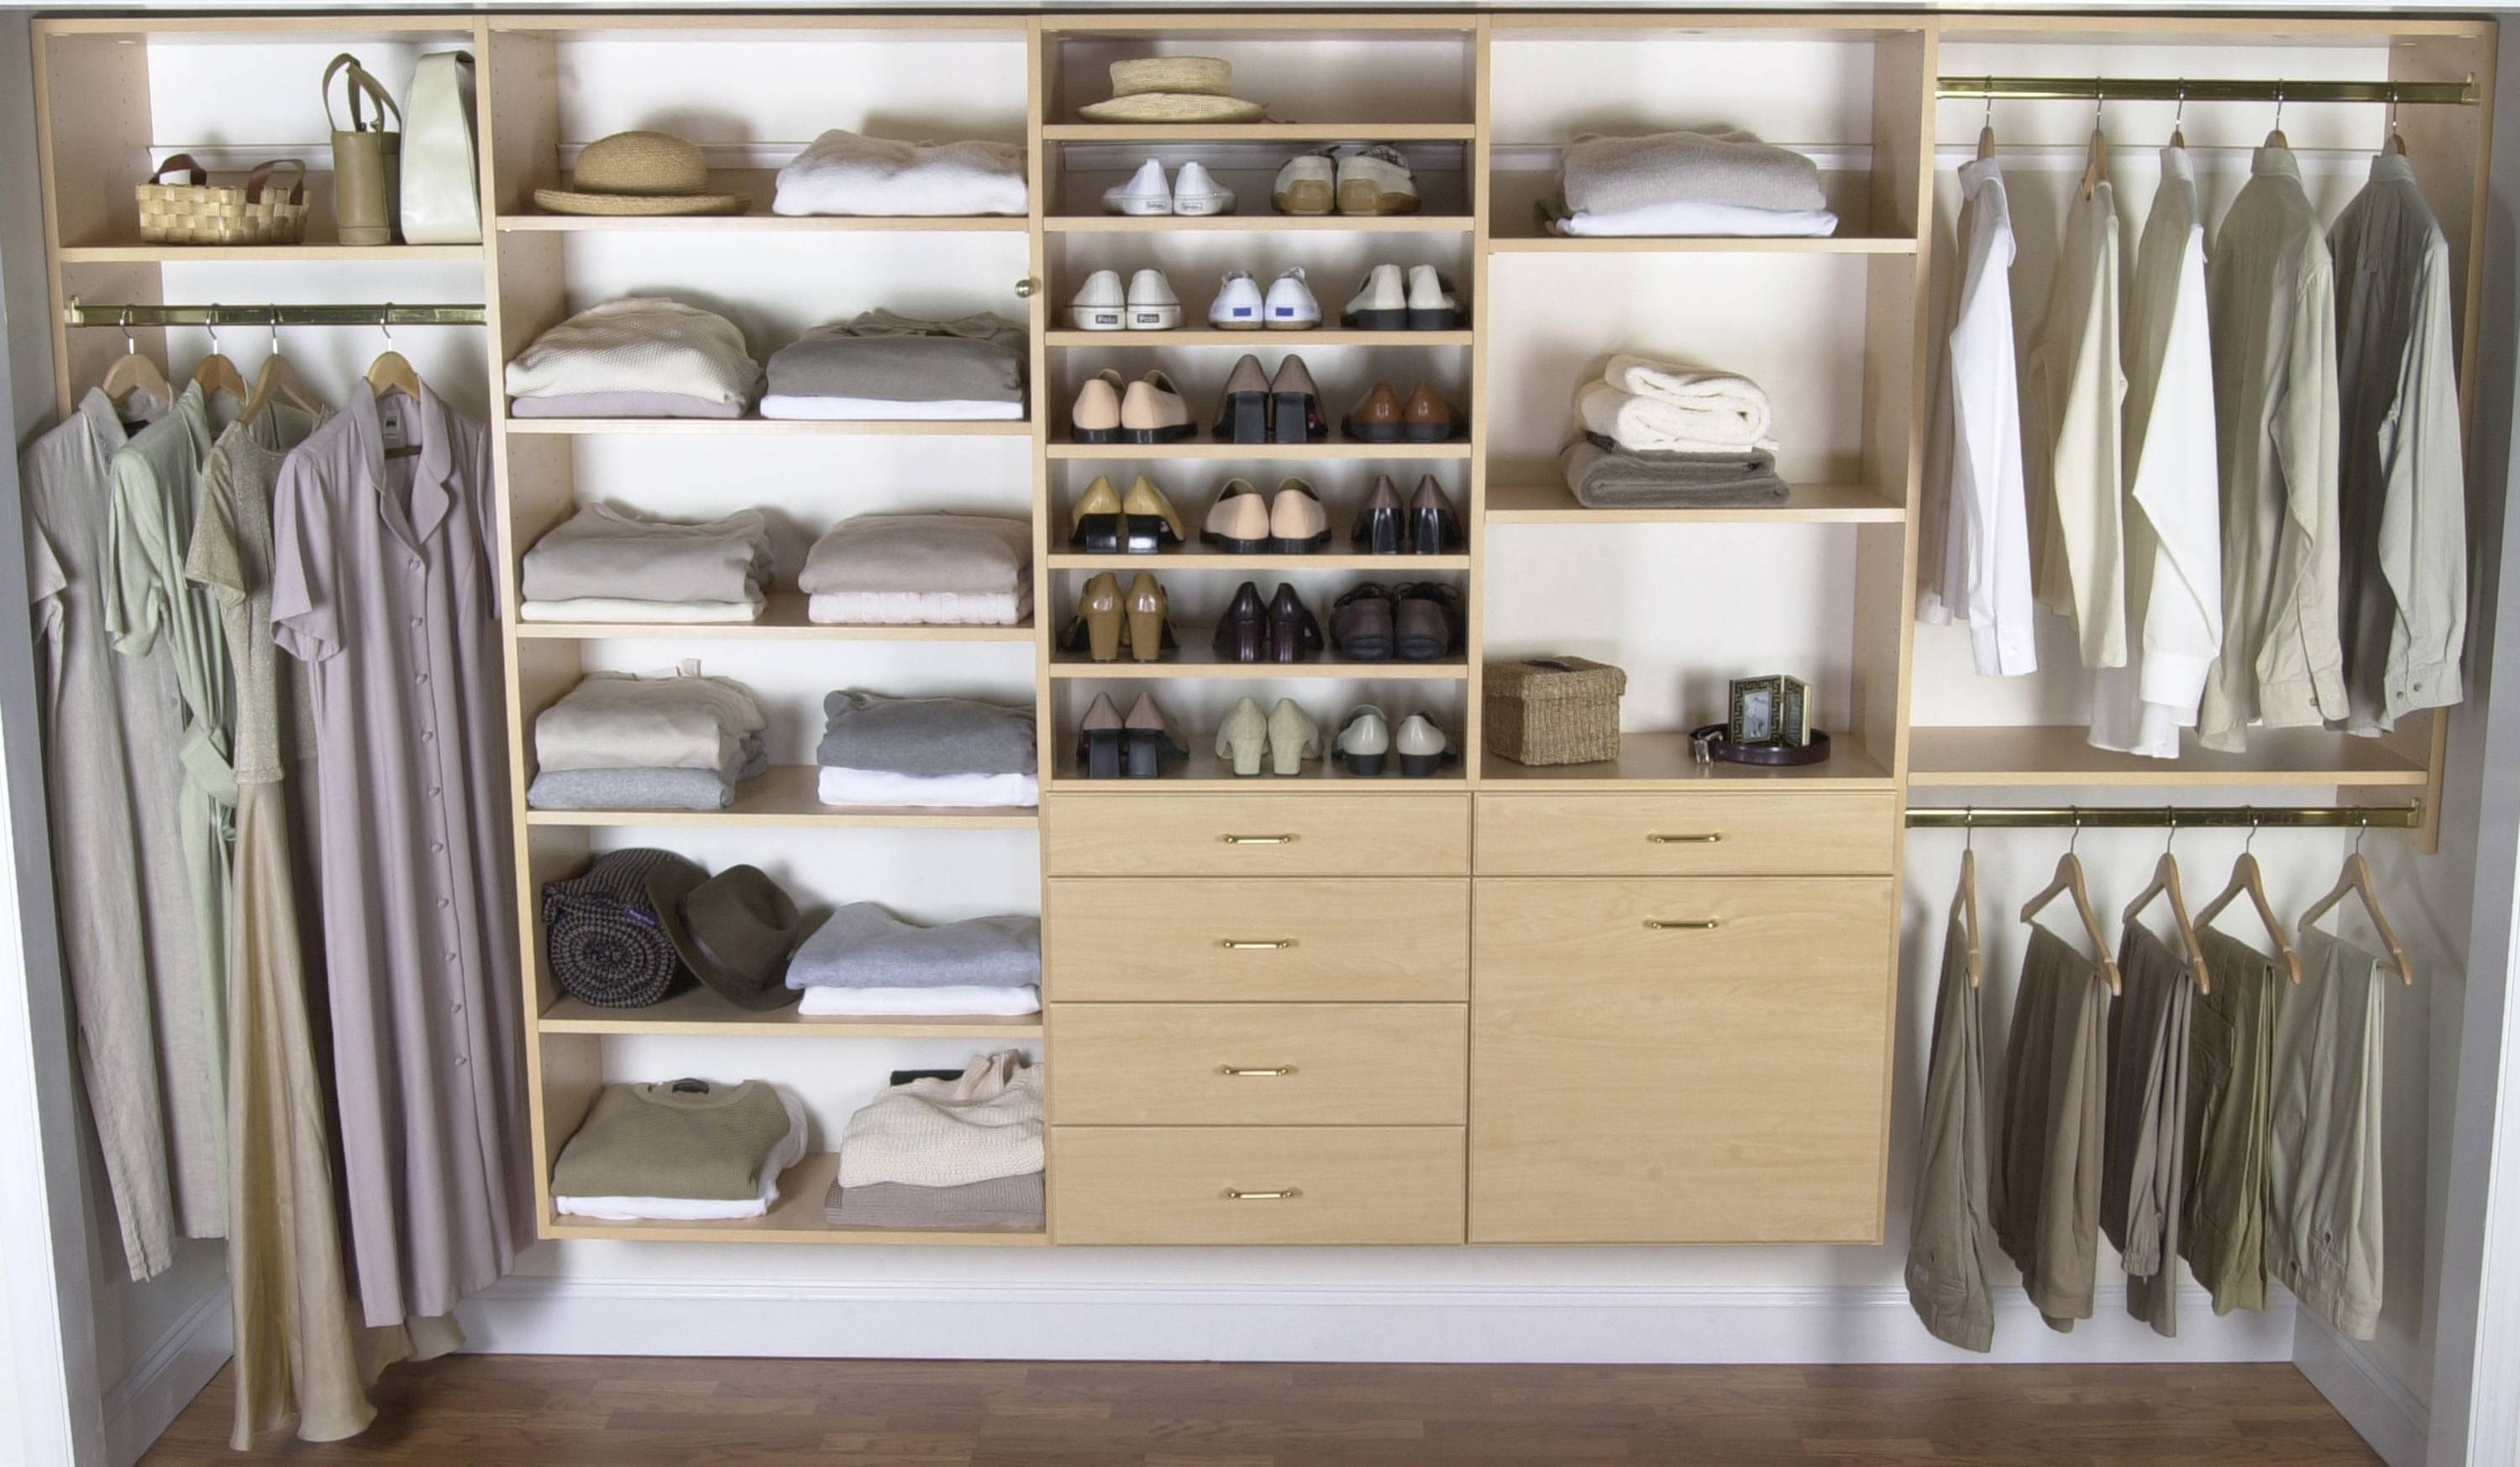 California closets las vegas - Stylish Custom Closets Nyc With Wardrobe Blanket Shoes Hat Storage On White Wall And Wood Floor